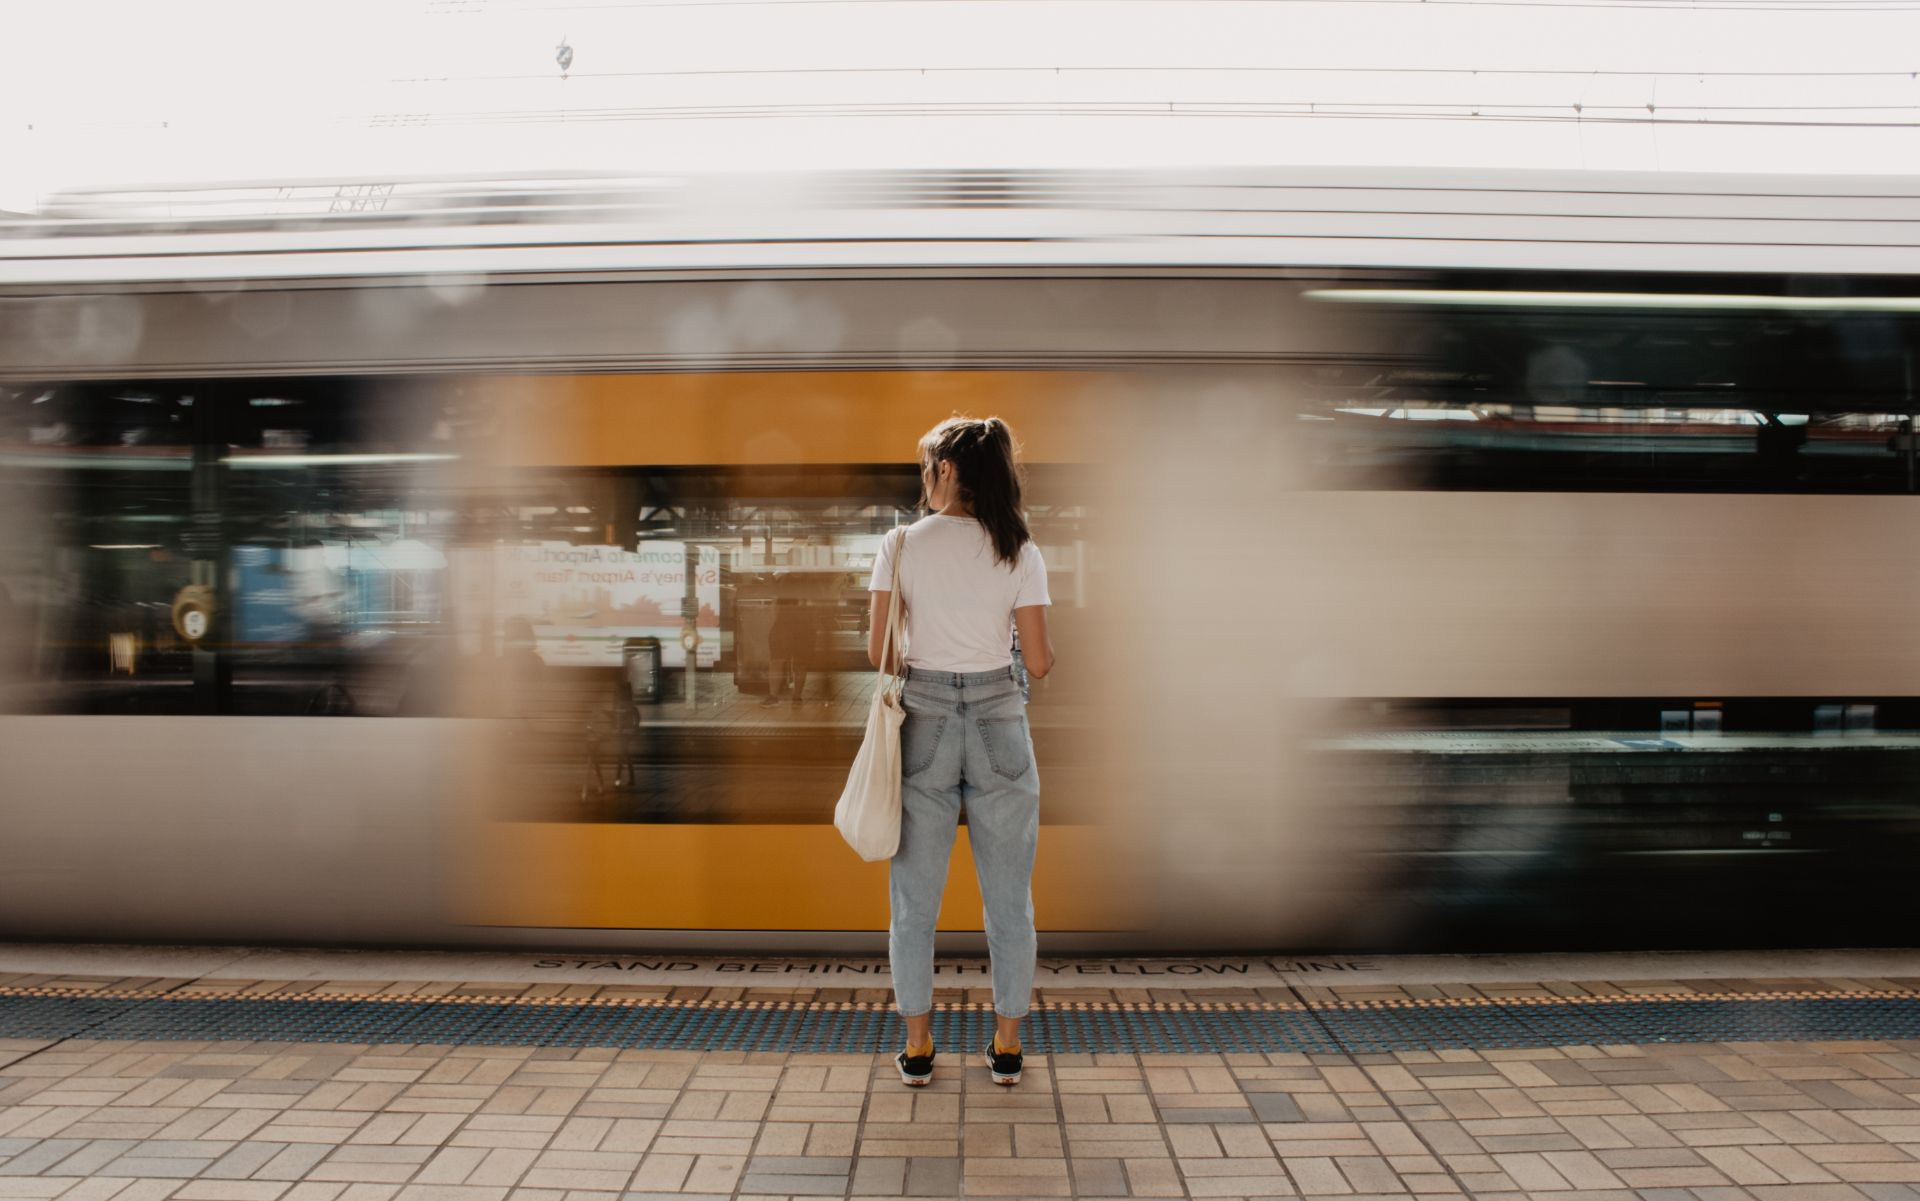 girl-wearing-a-white-t-shirt-and-baggy-light-blue-mom-jeans-standing-at-a-train-station-platform-as-a-train-rushes-past-in-the-background-interrail-budget-interrailing-on-a-budget